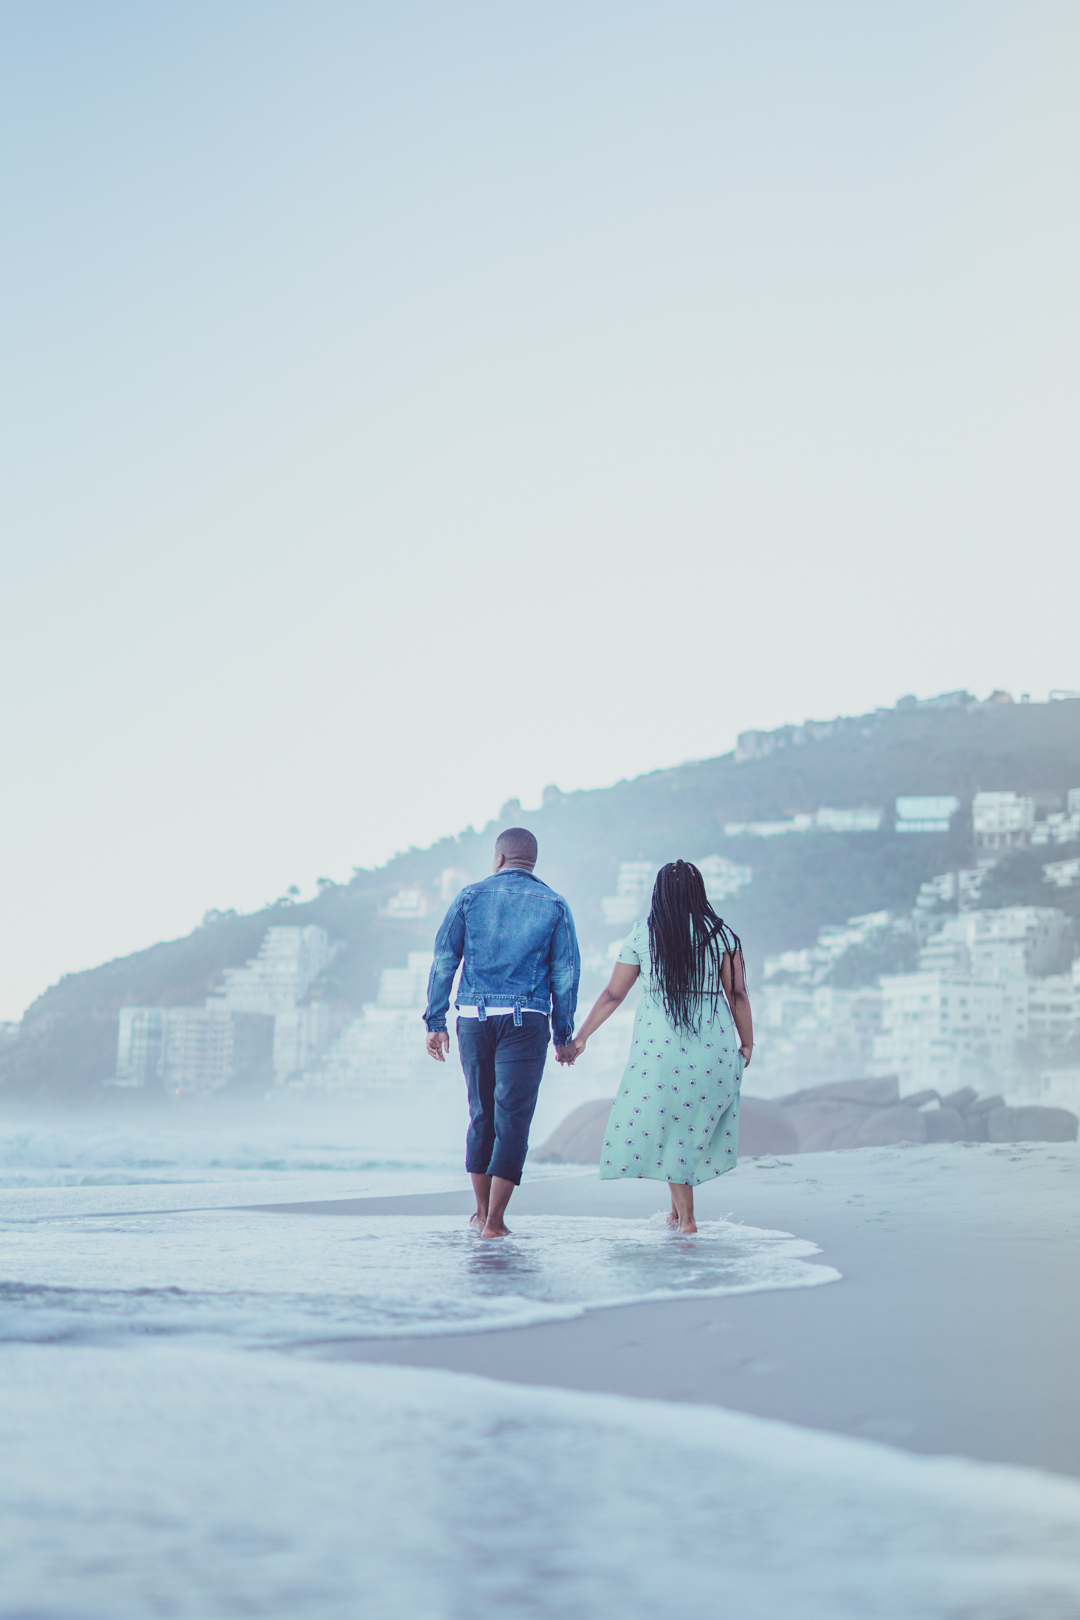 Couples Photos - Cape Town Beach session by Cape Image Co. _Small-file-8.jpg